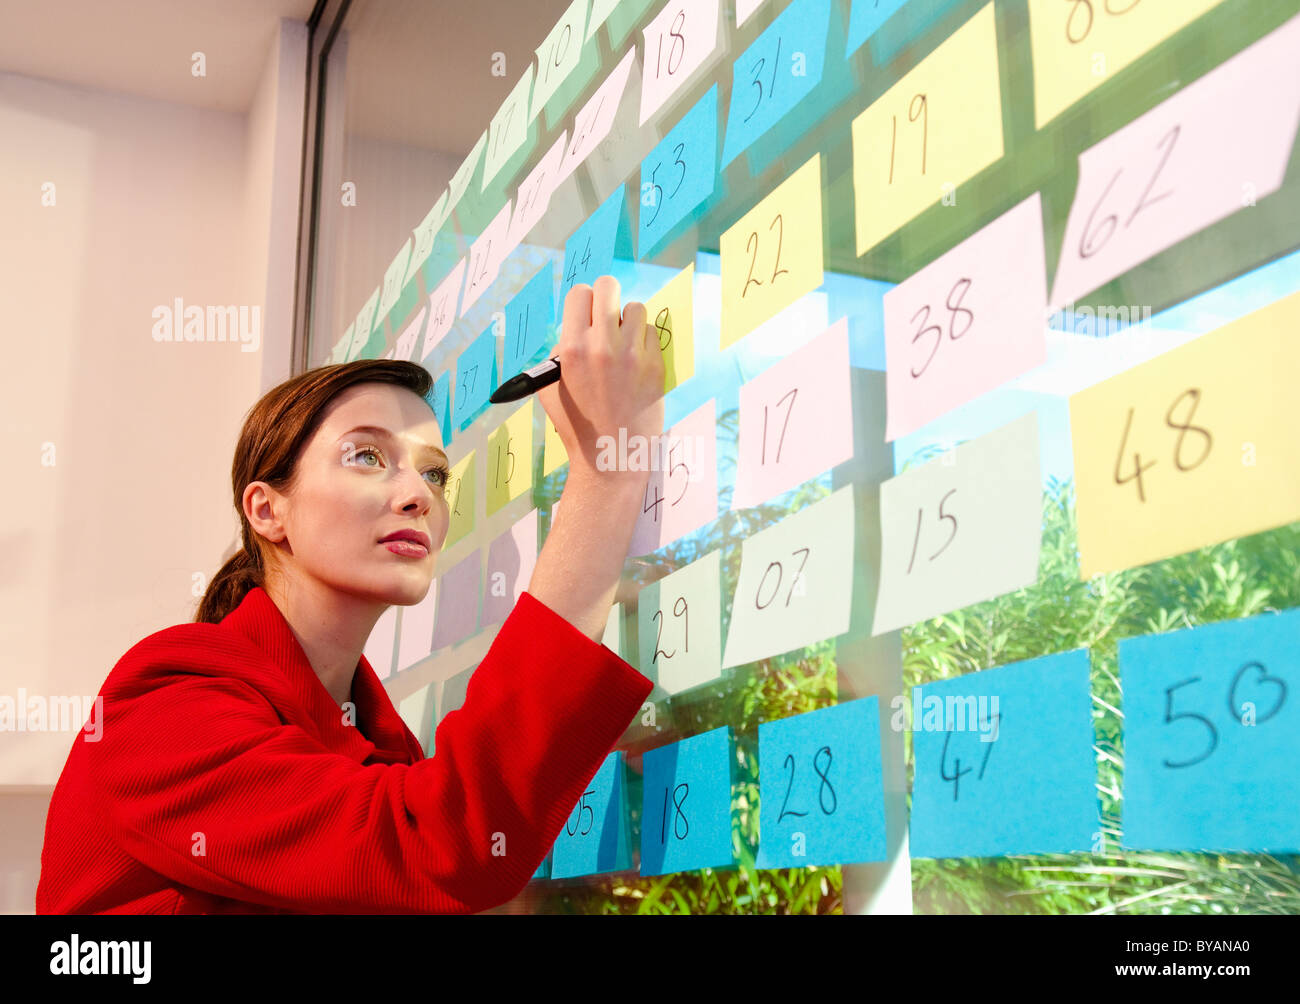 Woman writes on sticky labels - Stock Image